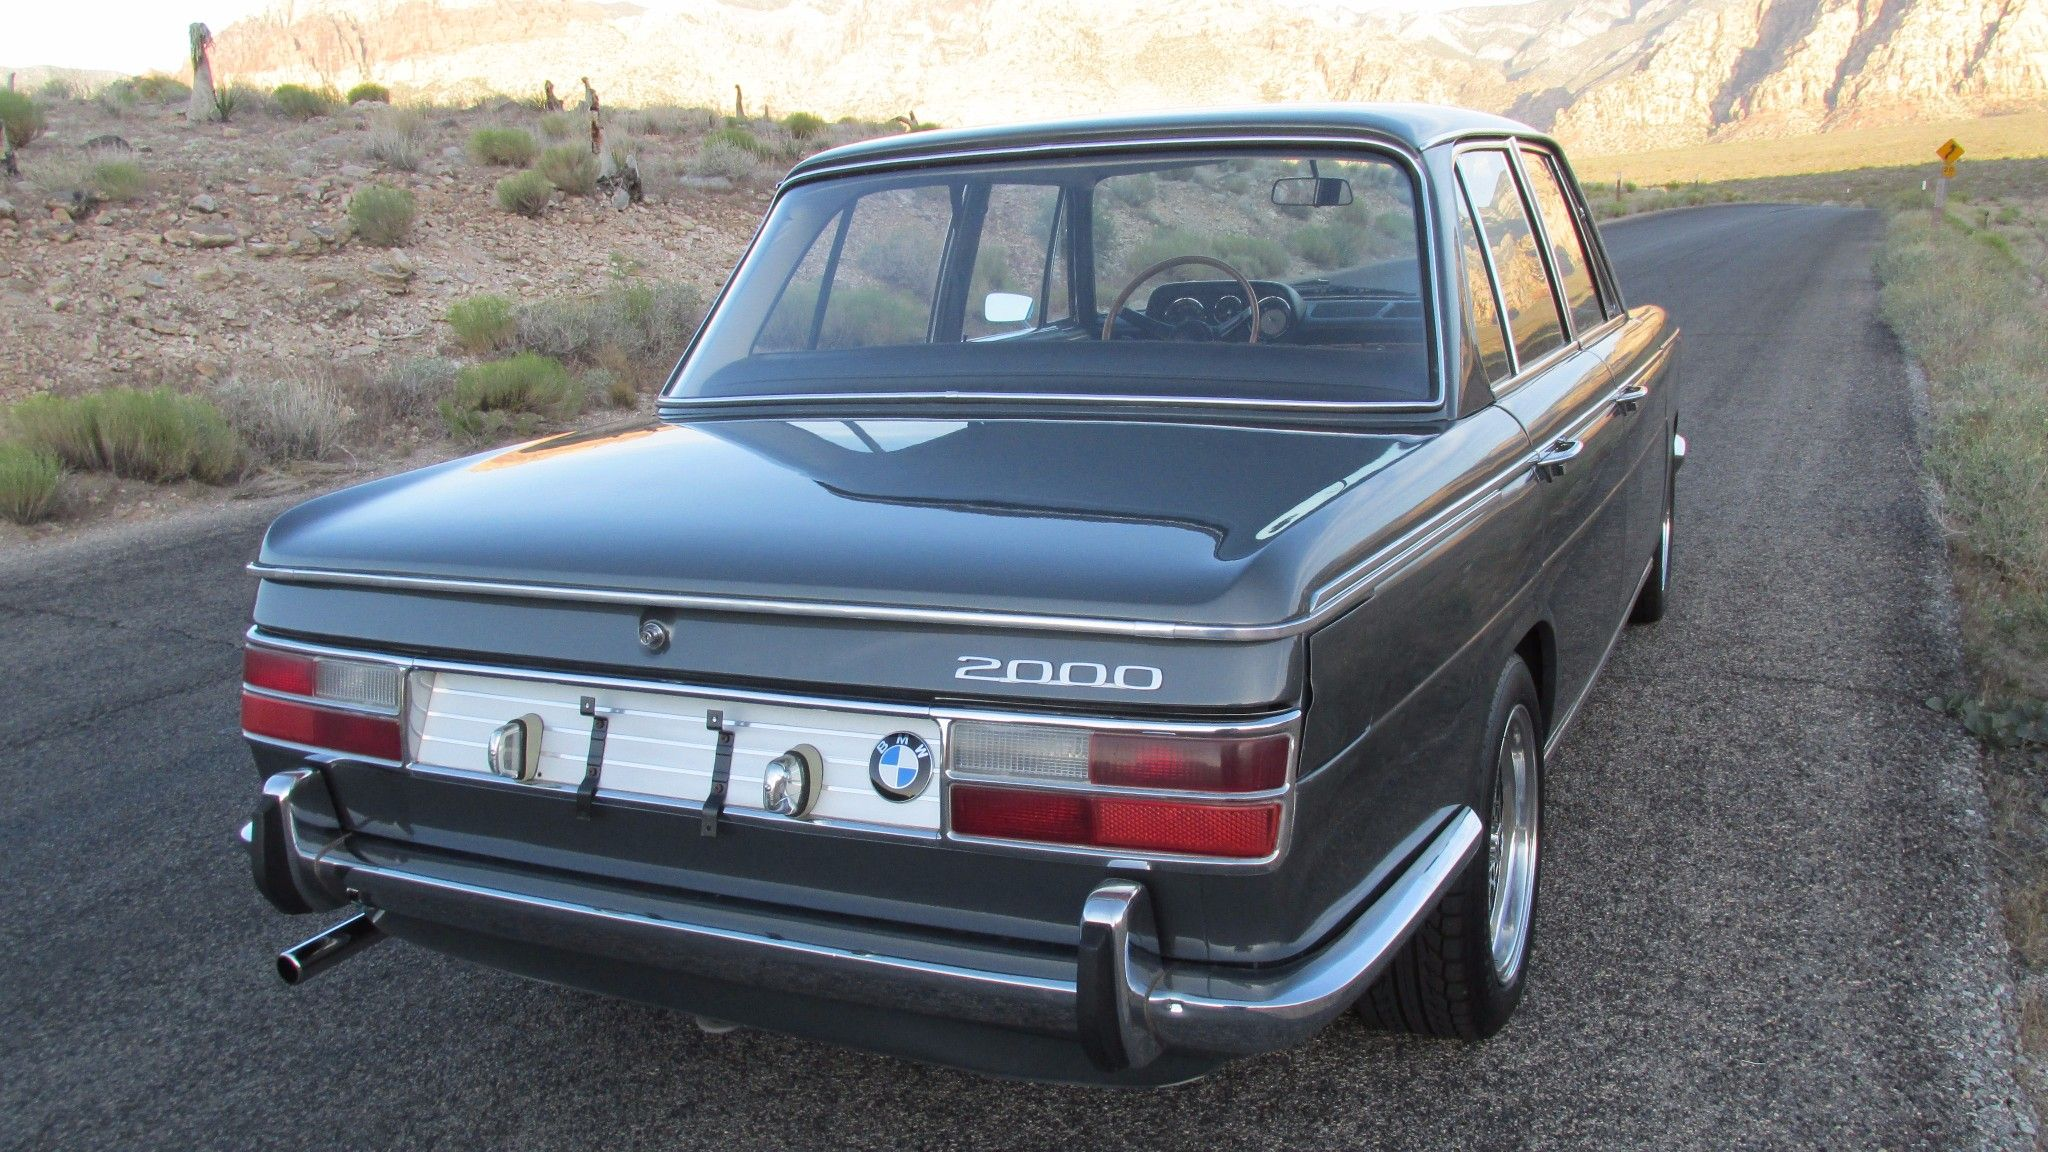 This 1970 BMW 2000 Neue Klasse has undergone a partial restoration and is fitted…